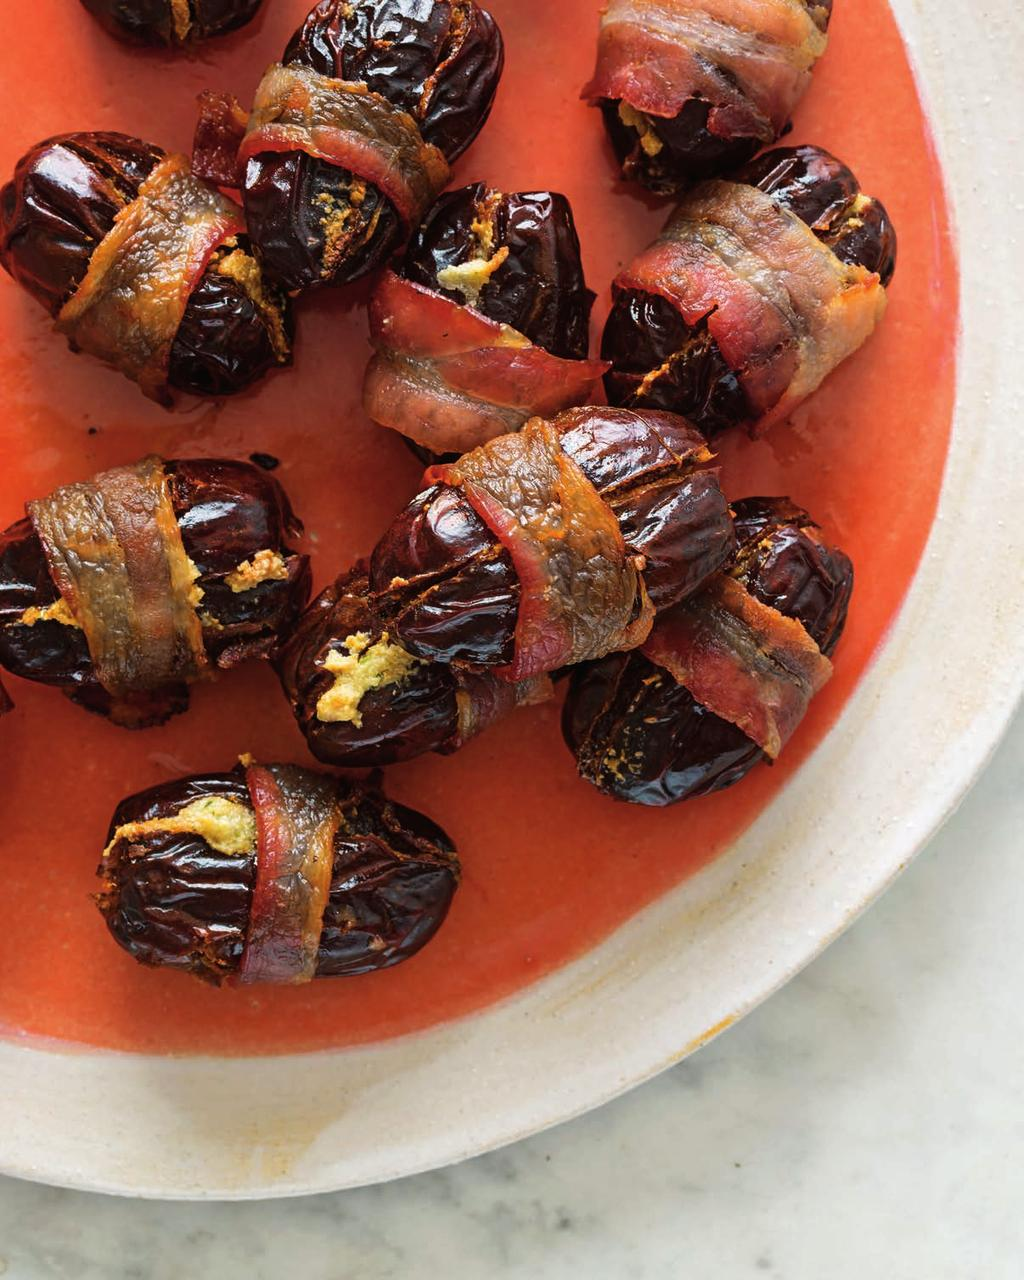 Creamy Bacon-Wrapped Dates SERVES 10 (2 PER PERSON) I usually prep these, stage them in the oven and turn the oven on as soon as the first dinner guests arrive.